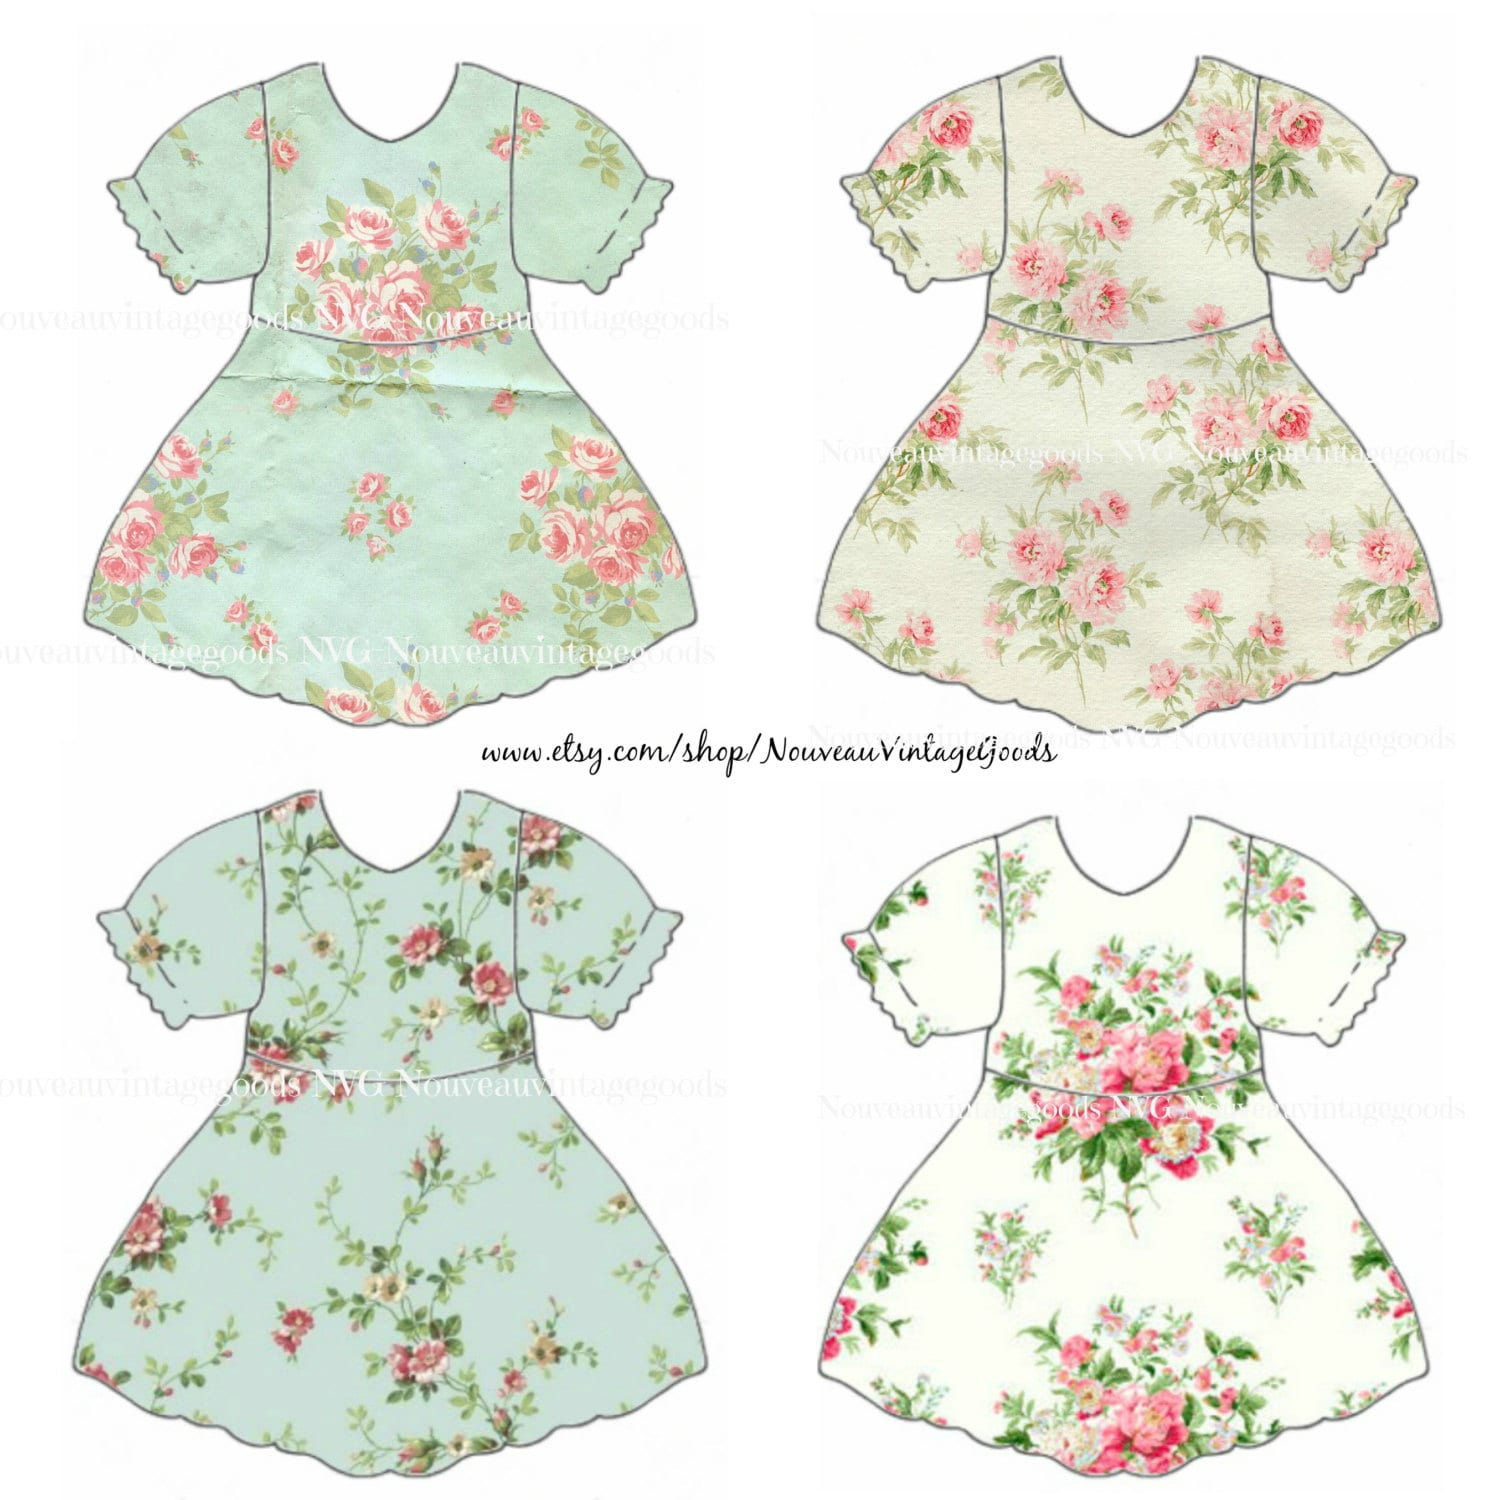 VINTAGE DIGITAL DRESS Baby Girl Dress Clipart Babydoll Collage Sheet Scrapbook Supply Printable Download File